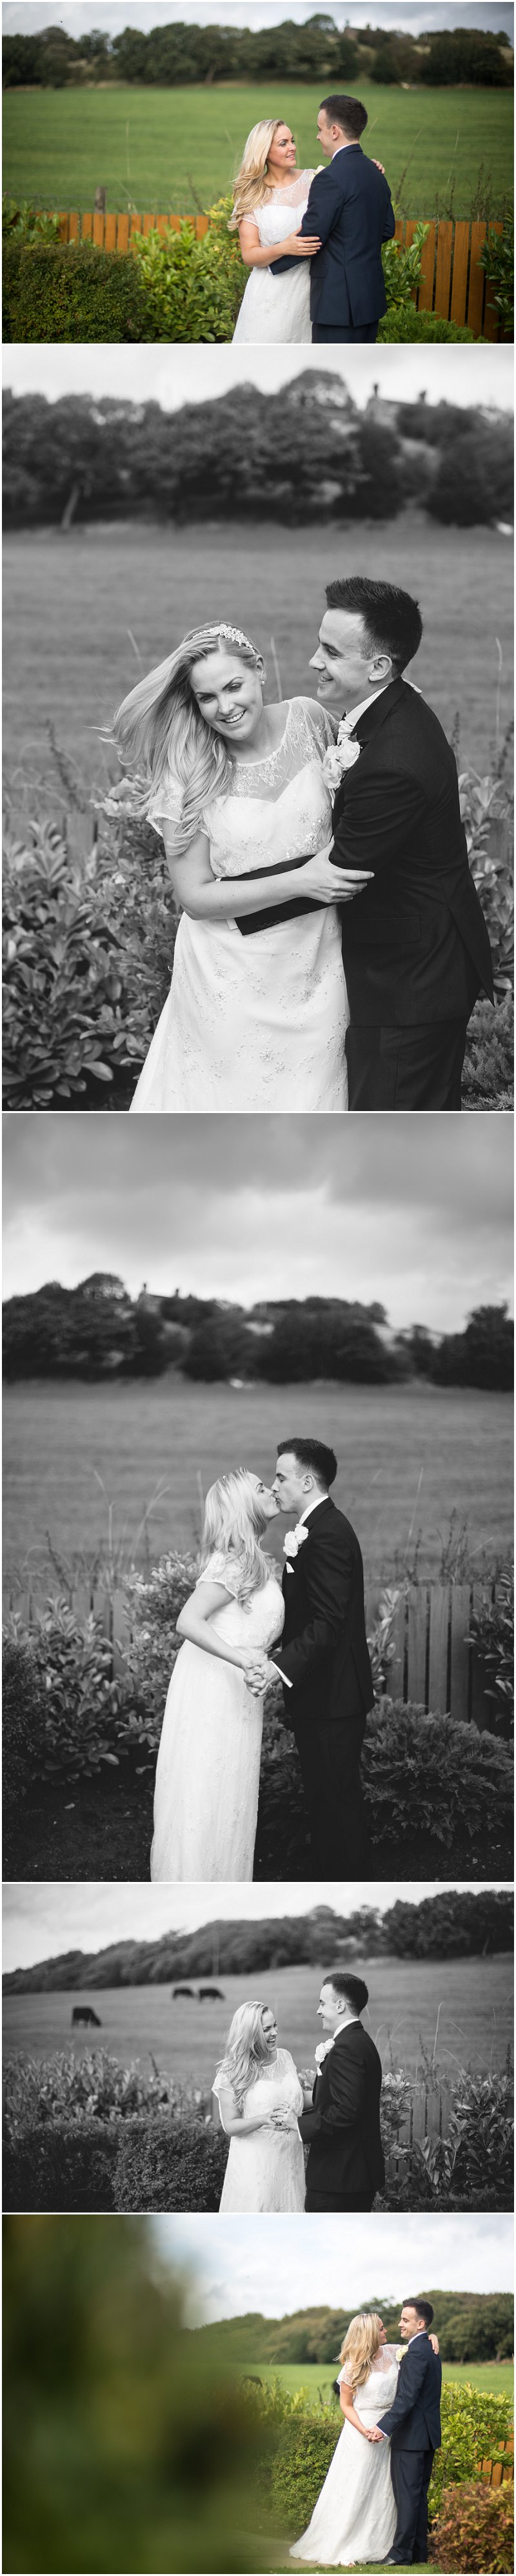 Bride and groom during couples portraits in Bury wedding